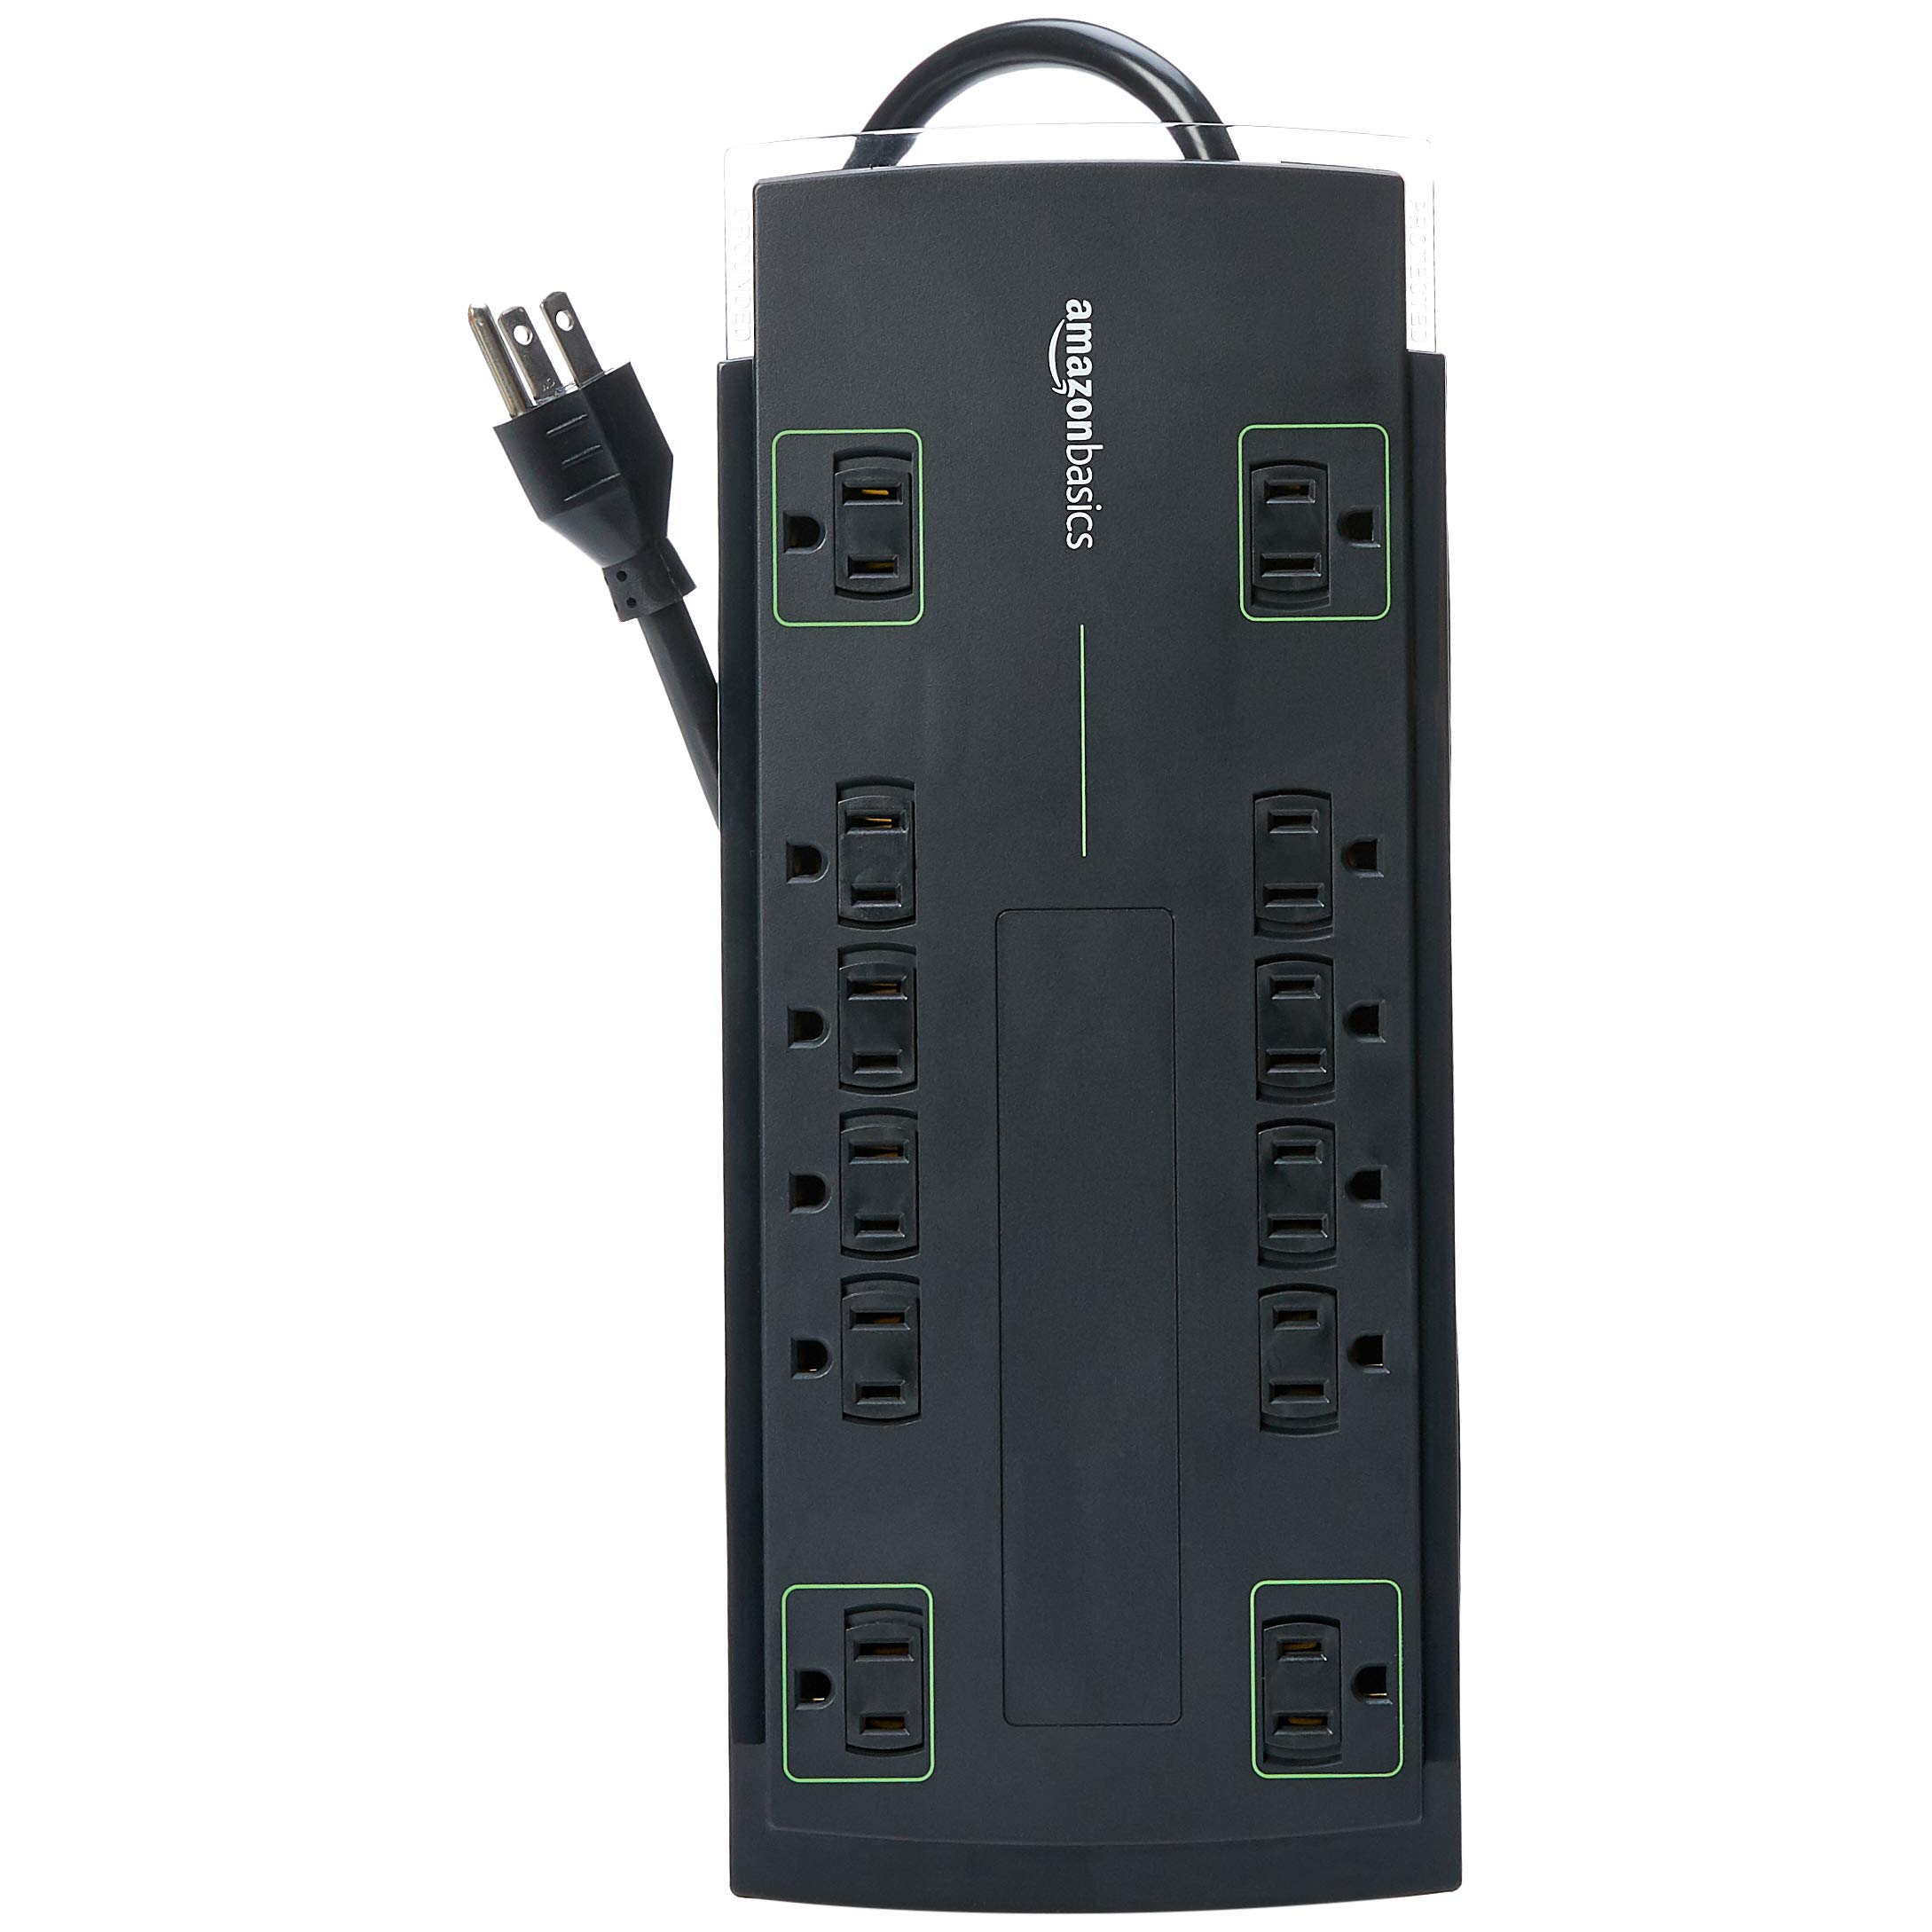 AmazonBasics 12-Outlet Power Strip Surge Protector   4,320 Joule, 8-Foot Cord by AmazonBasics (Image #3)